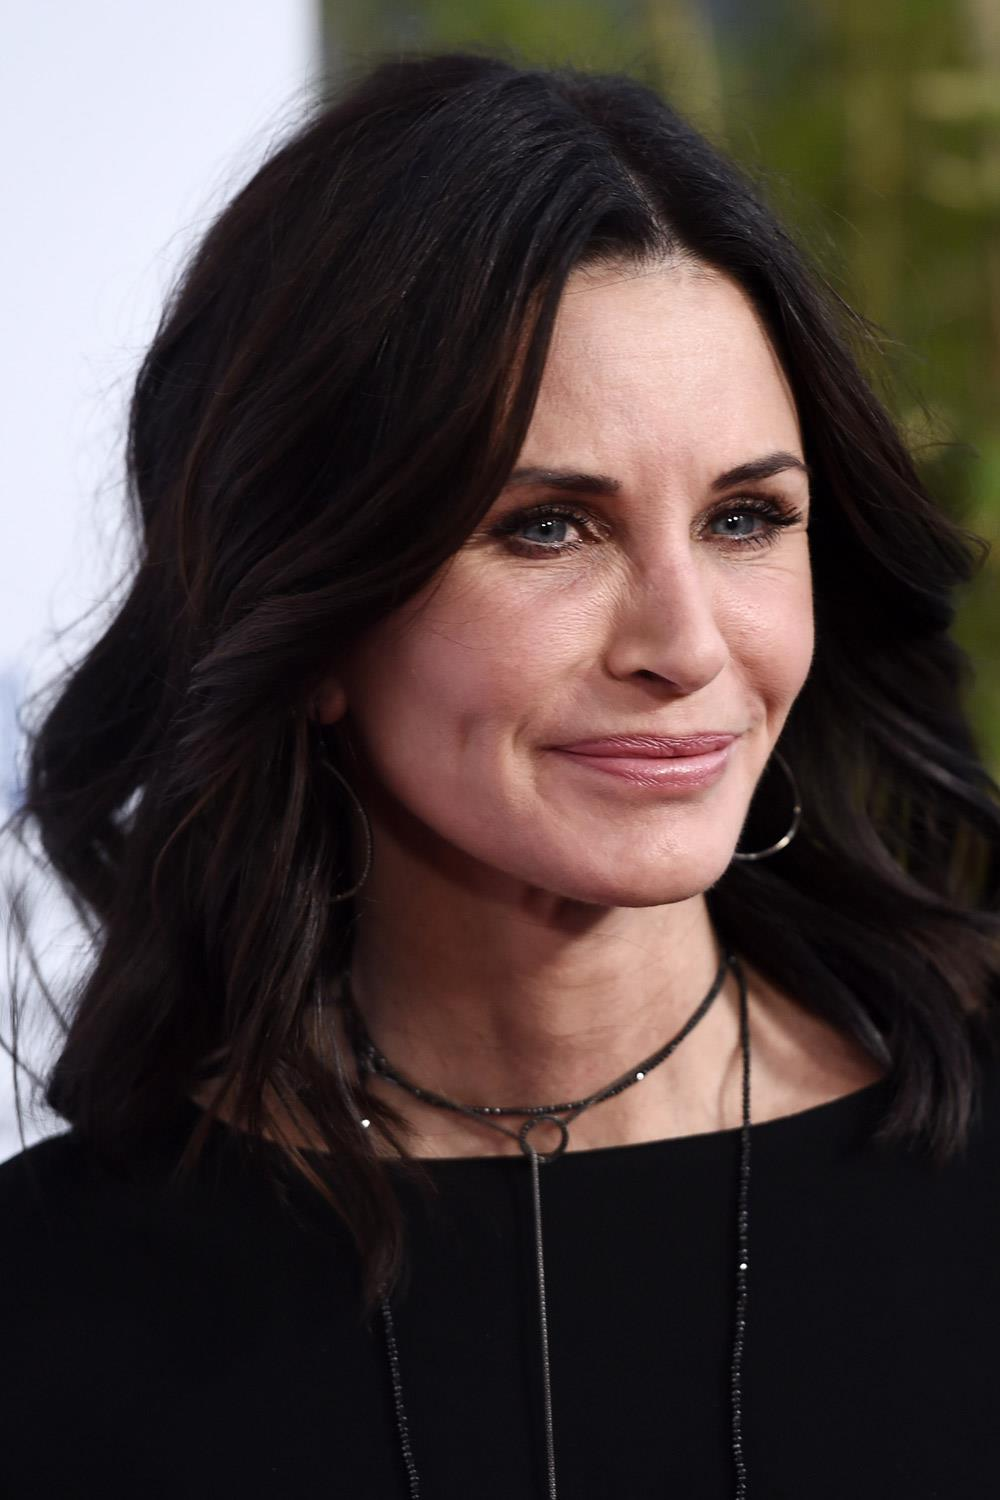 famosas operadas courtney cox. Courtney Cox después